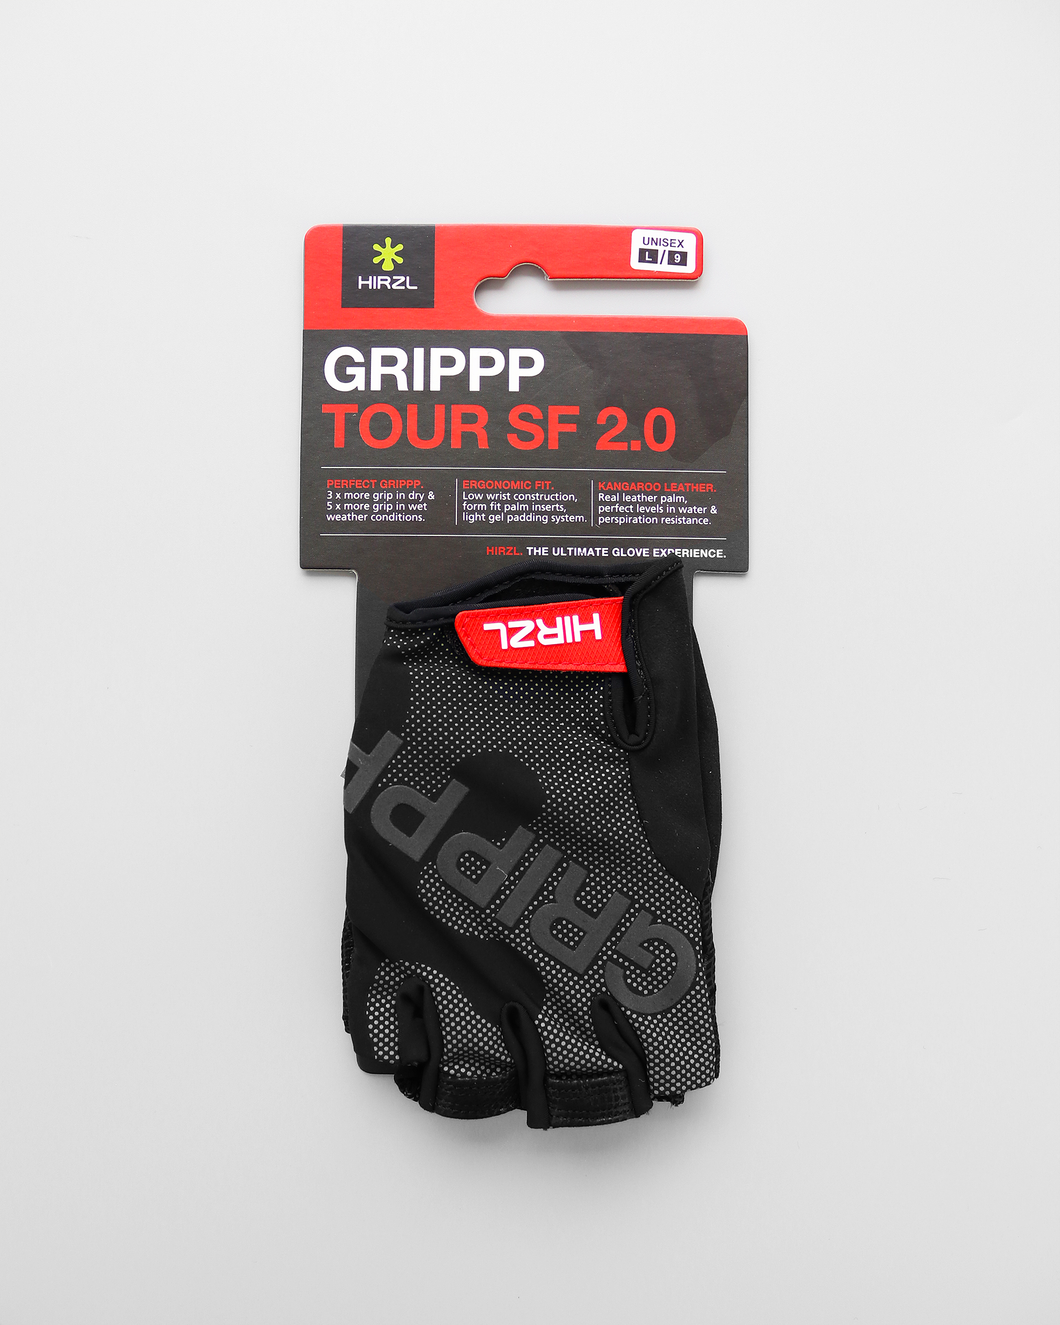 Hirzl Grippp Tour SF 2.0 Glove